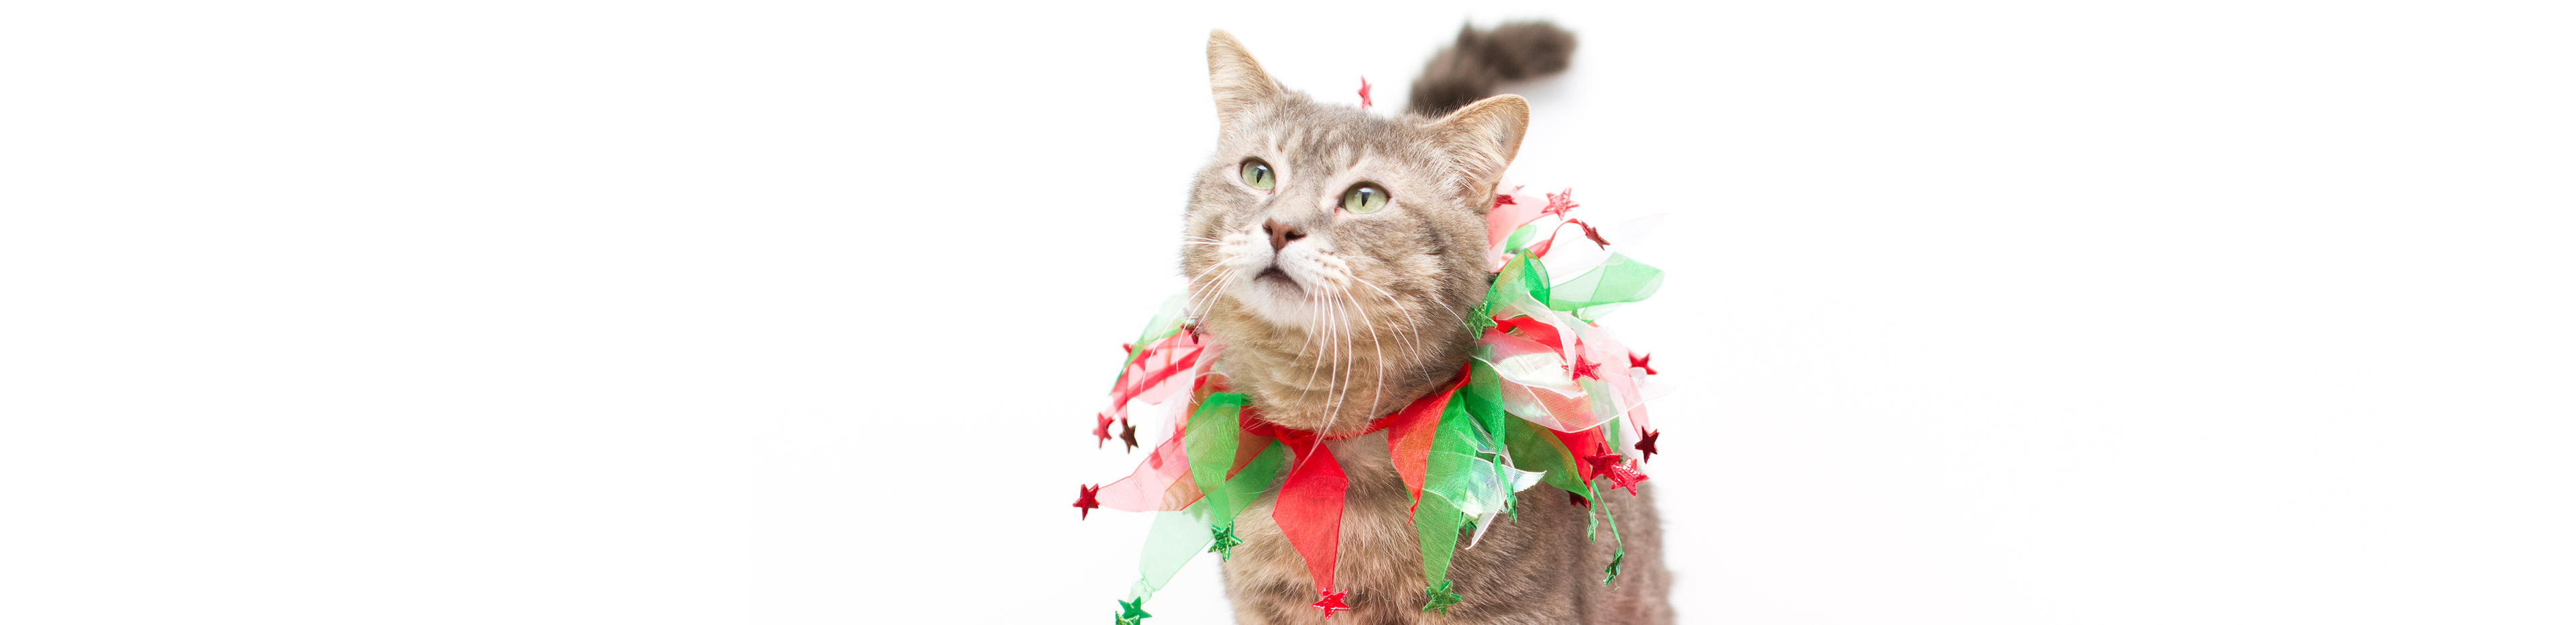 Cat with a christmas decorated collar promotes buying Christmas presents for pets blog